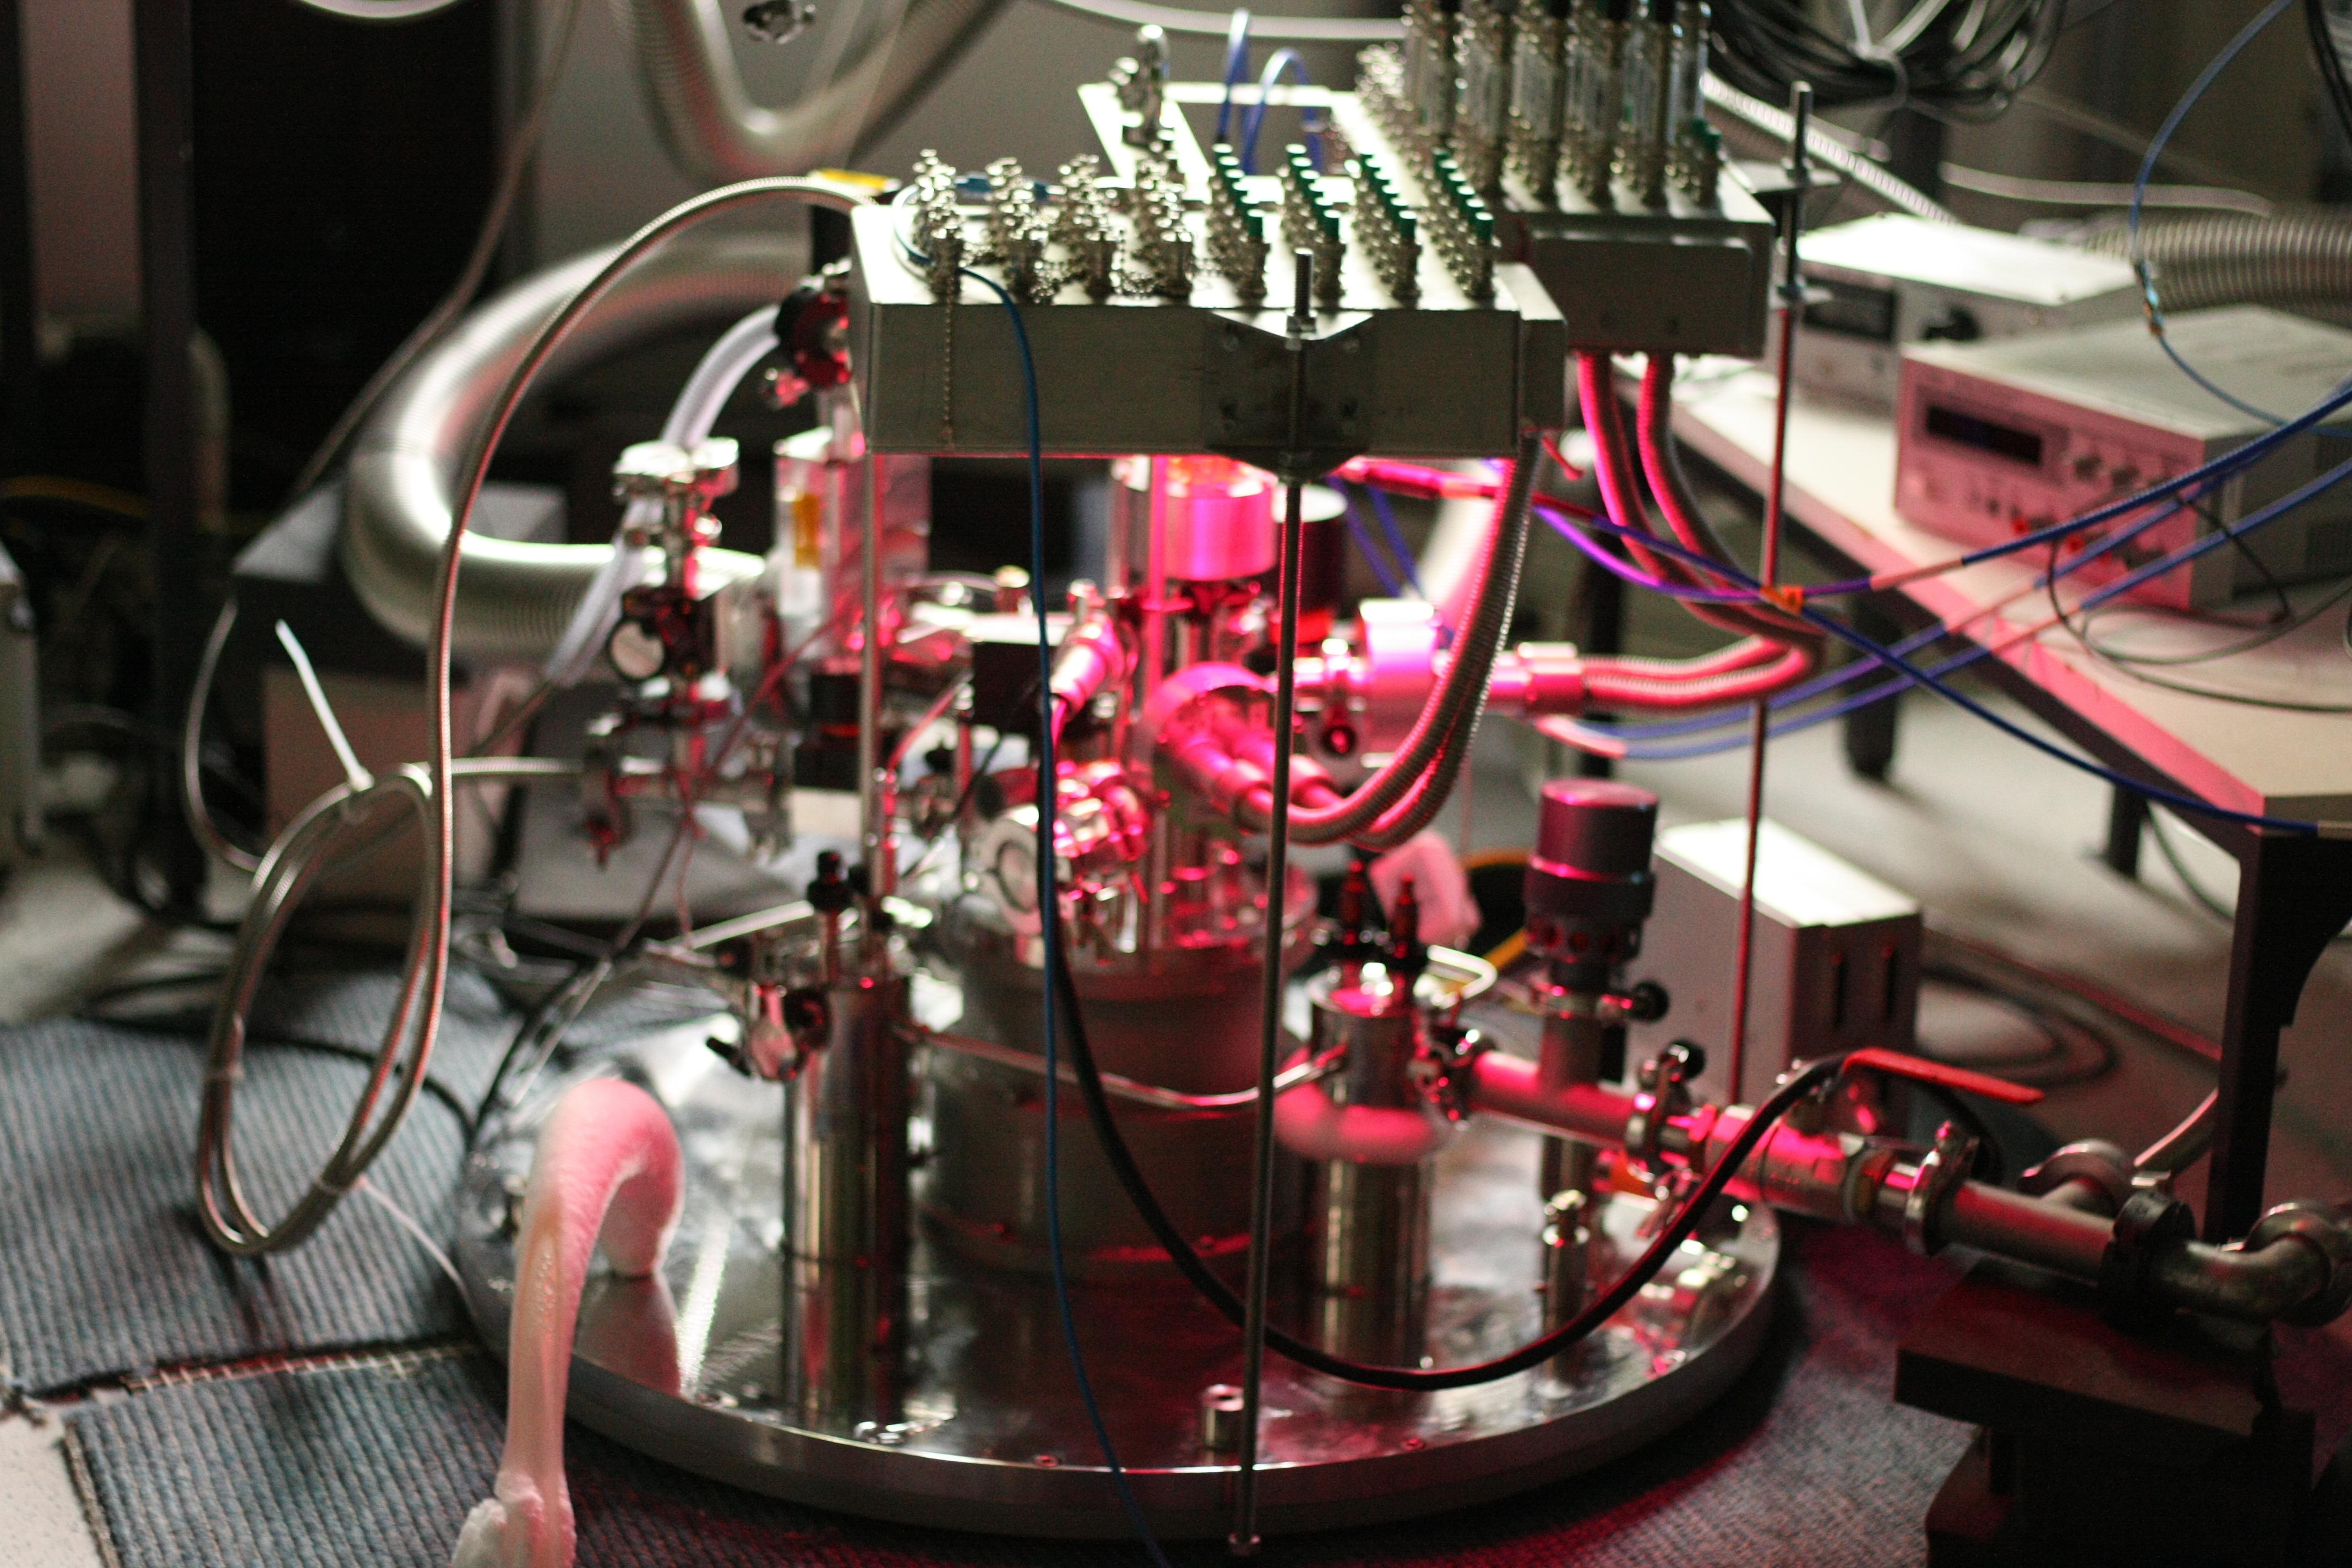 Dilution refrigerator for spin qubits